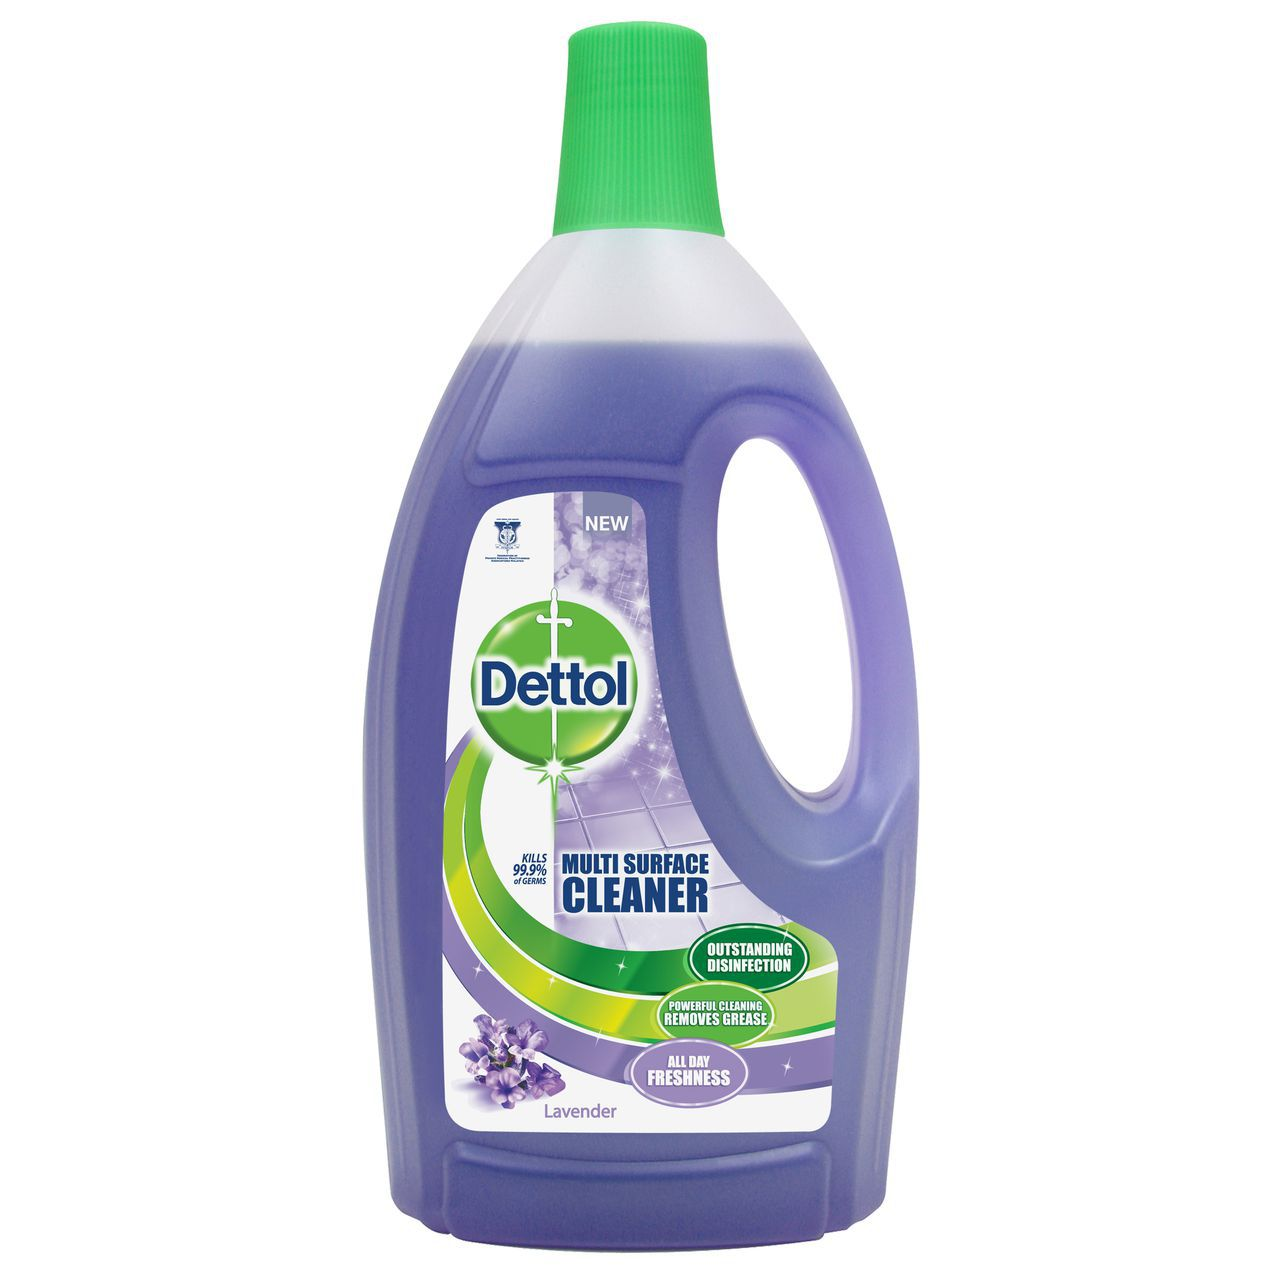 Dettol 4in1 Disinfectant Multi Action